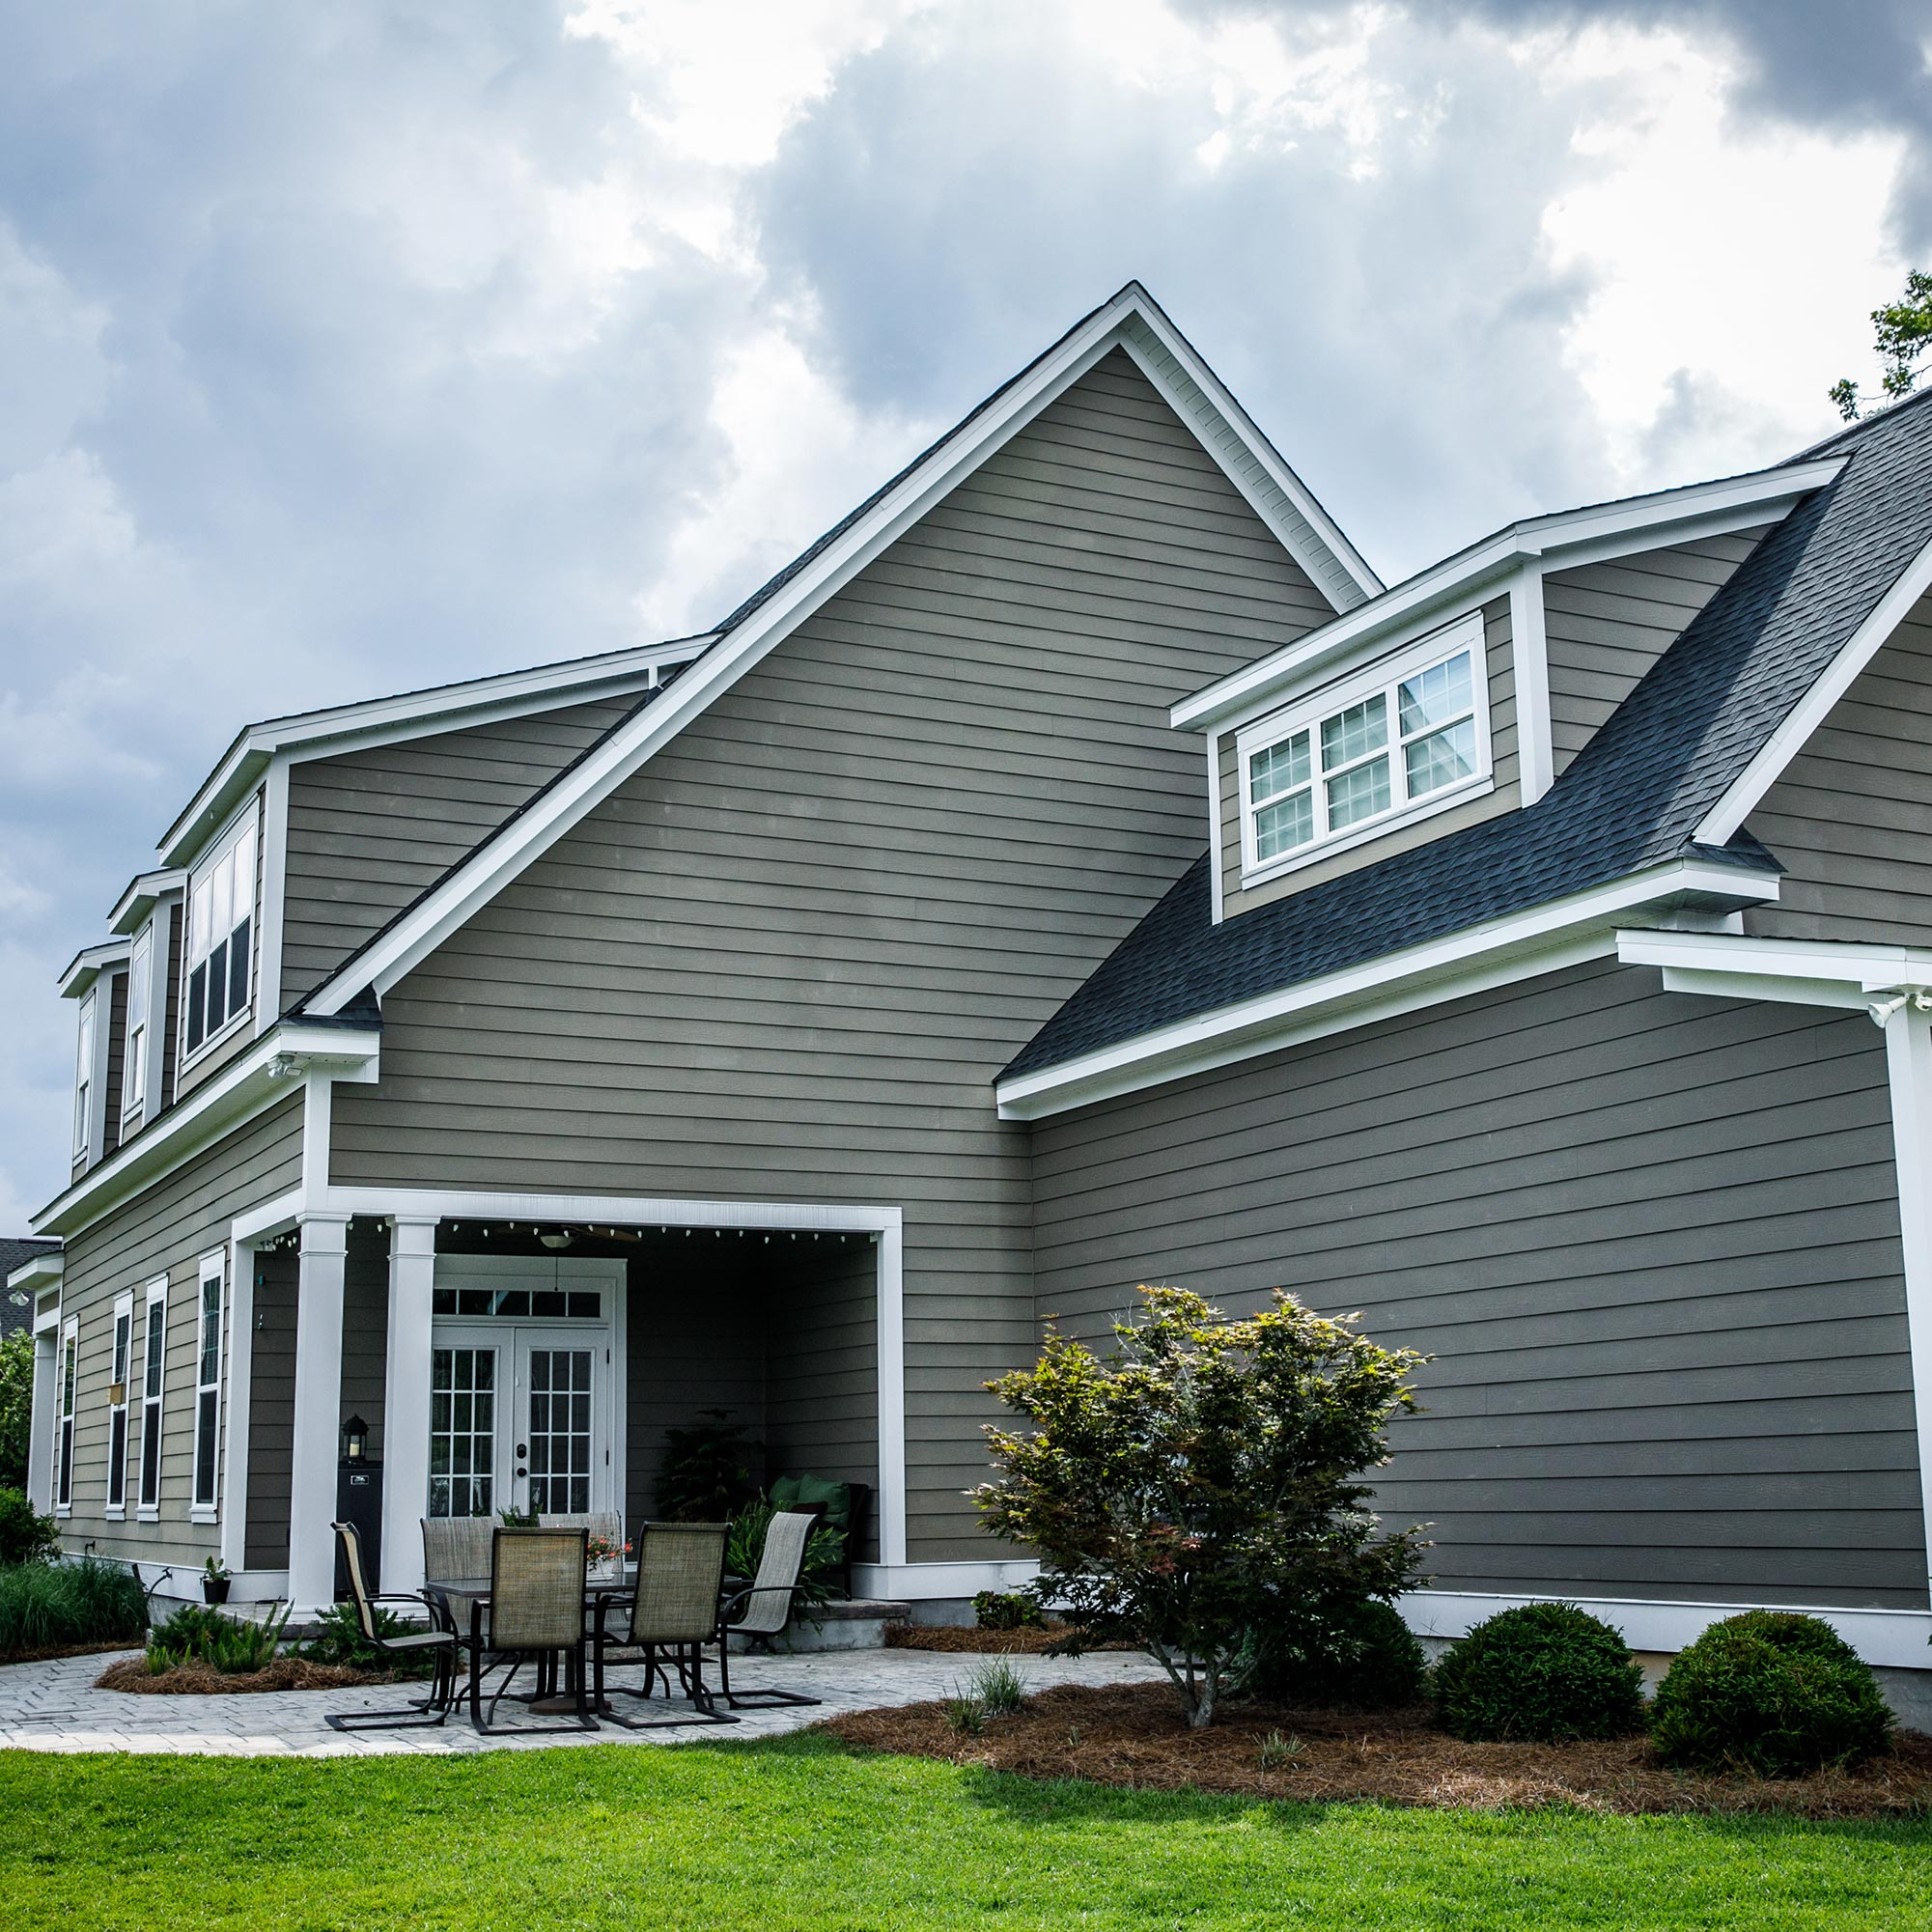 siding replacement by siding contractors in Highland Park